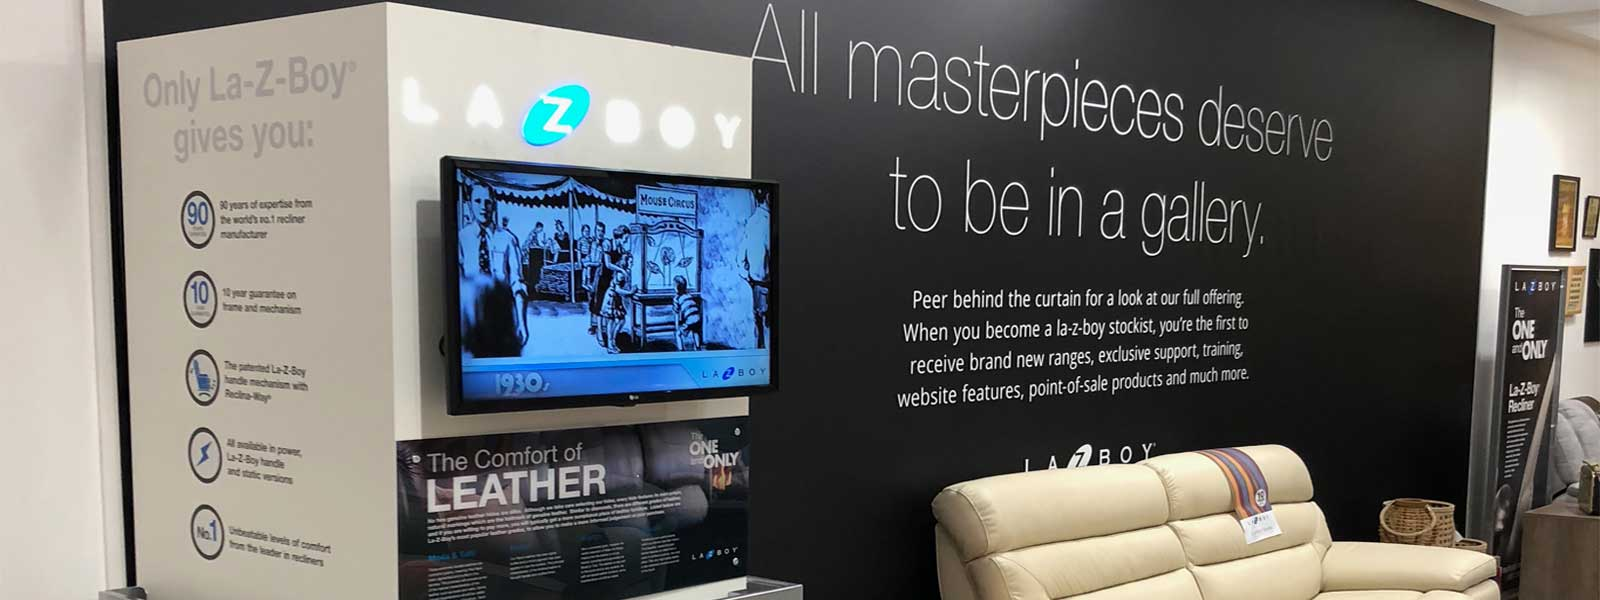 images of cirka creatives retail column for lazyboy at the furniture show